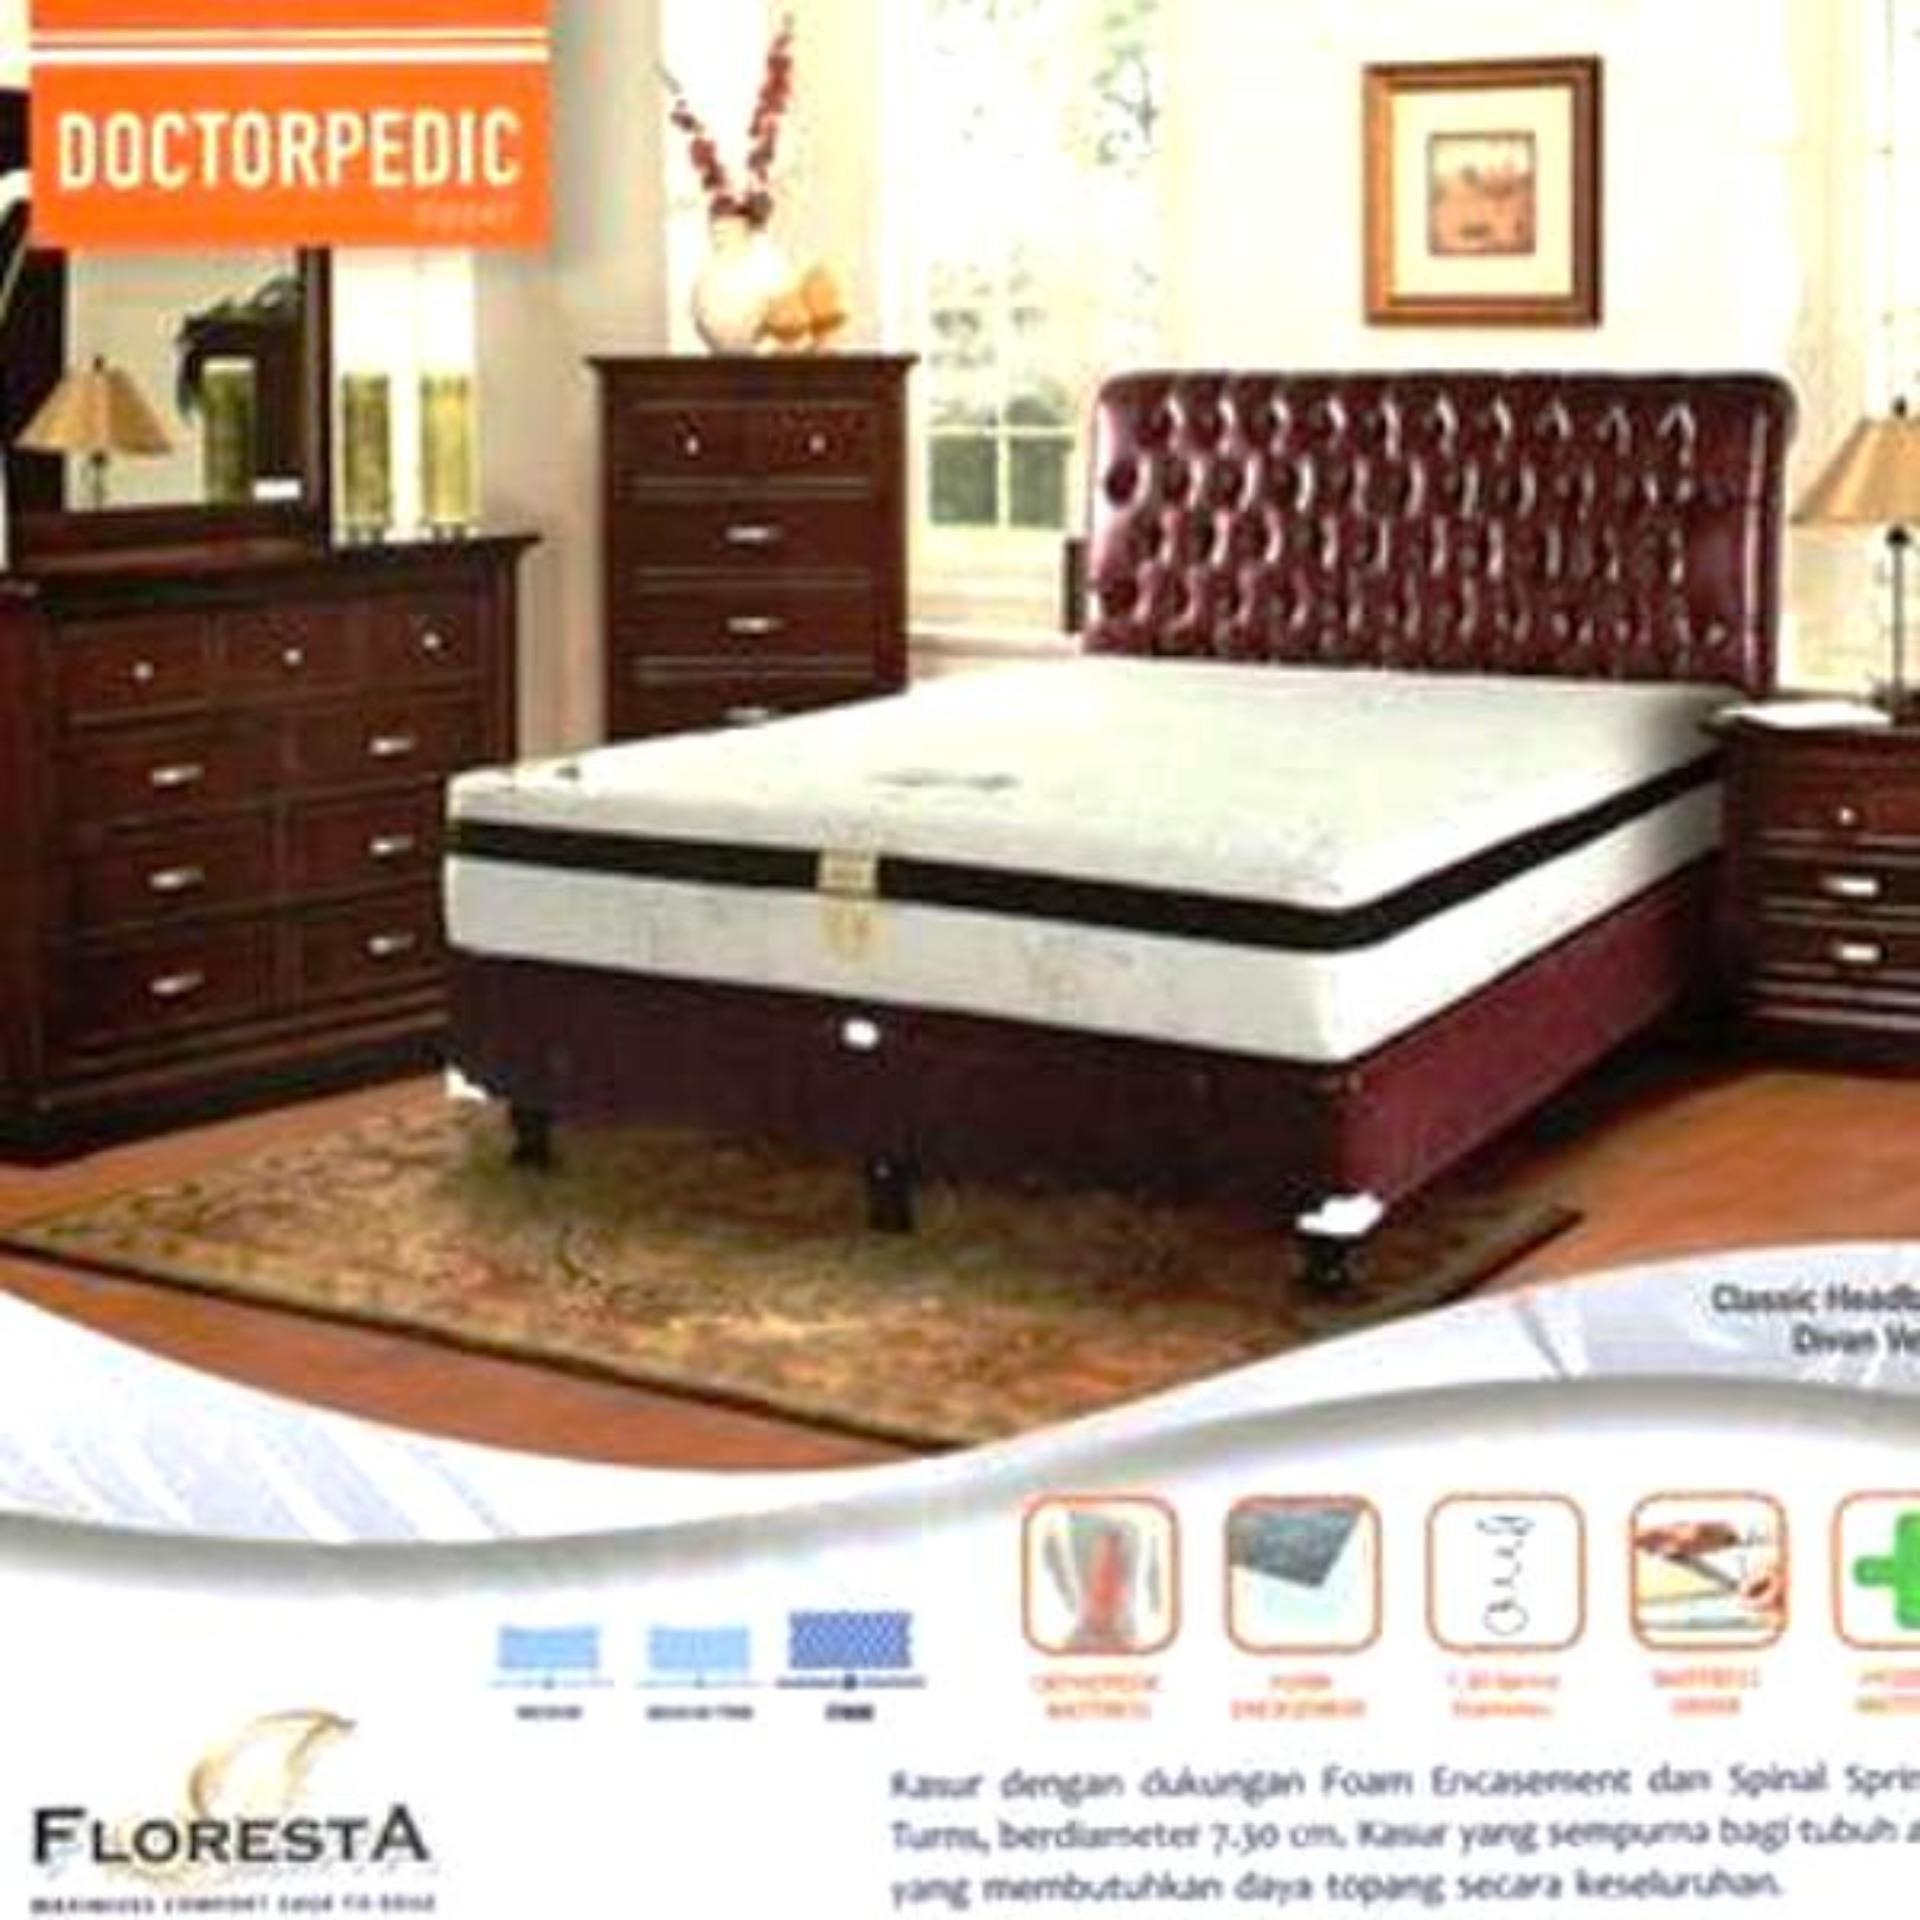 Toko Floresta Springbed Doctorpedic Zipper Clasic Verona Full Set Termurah